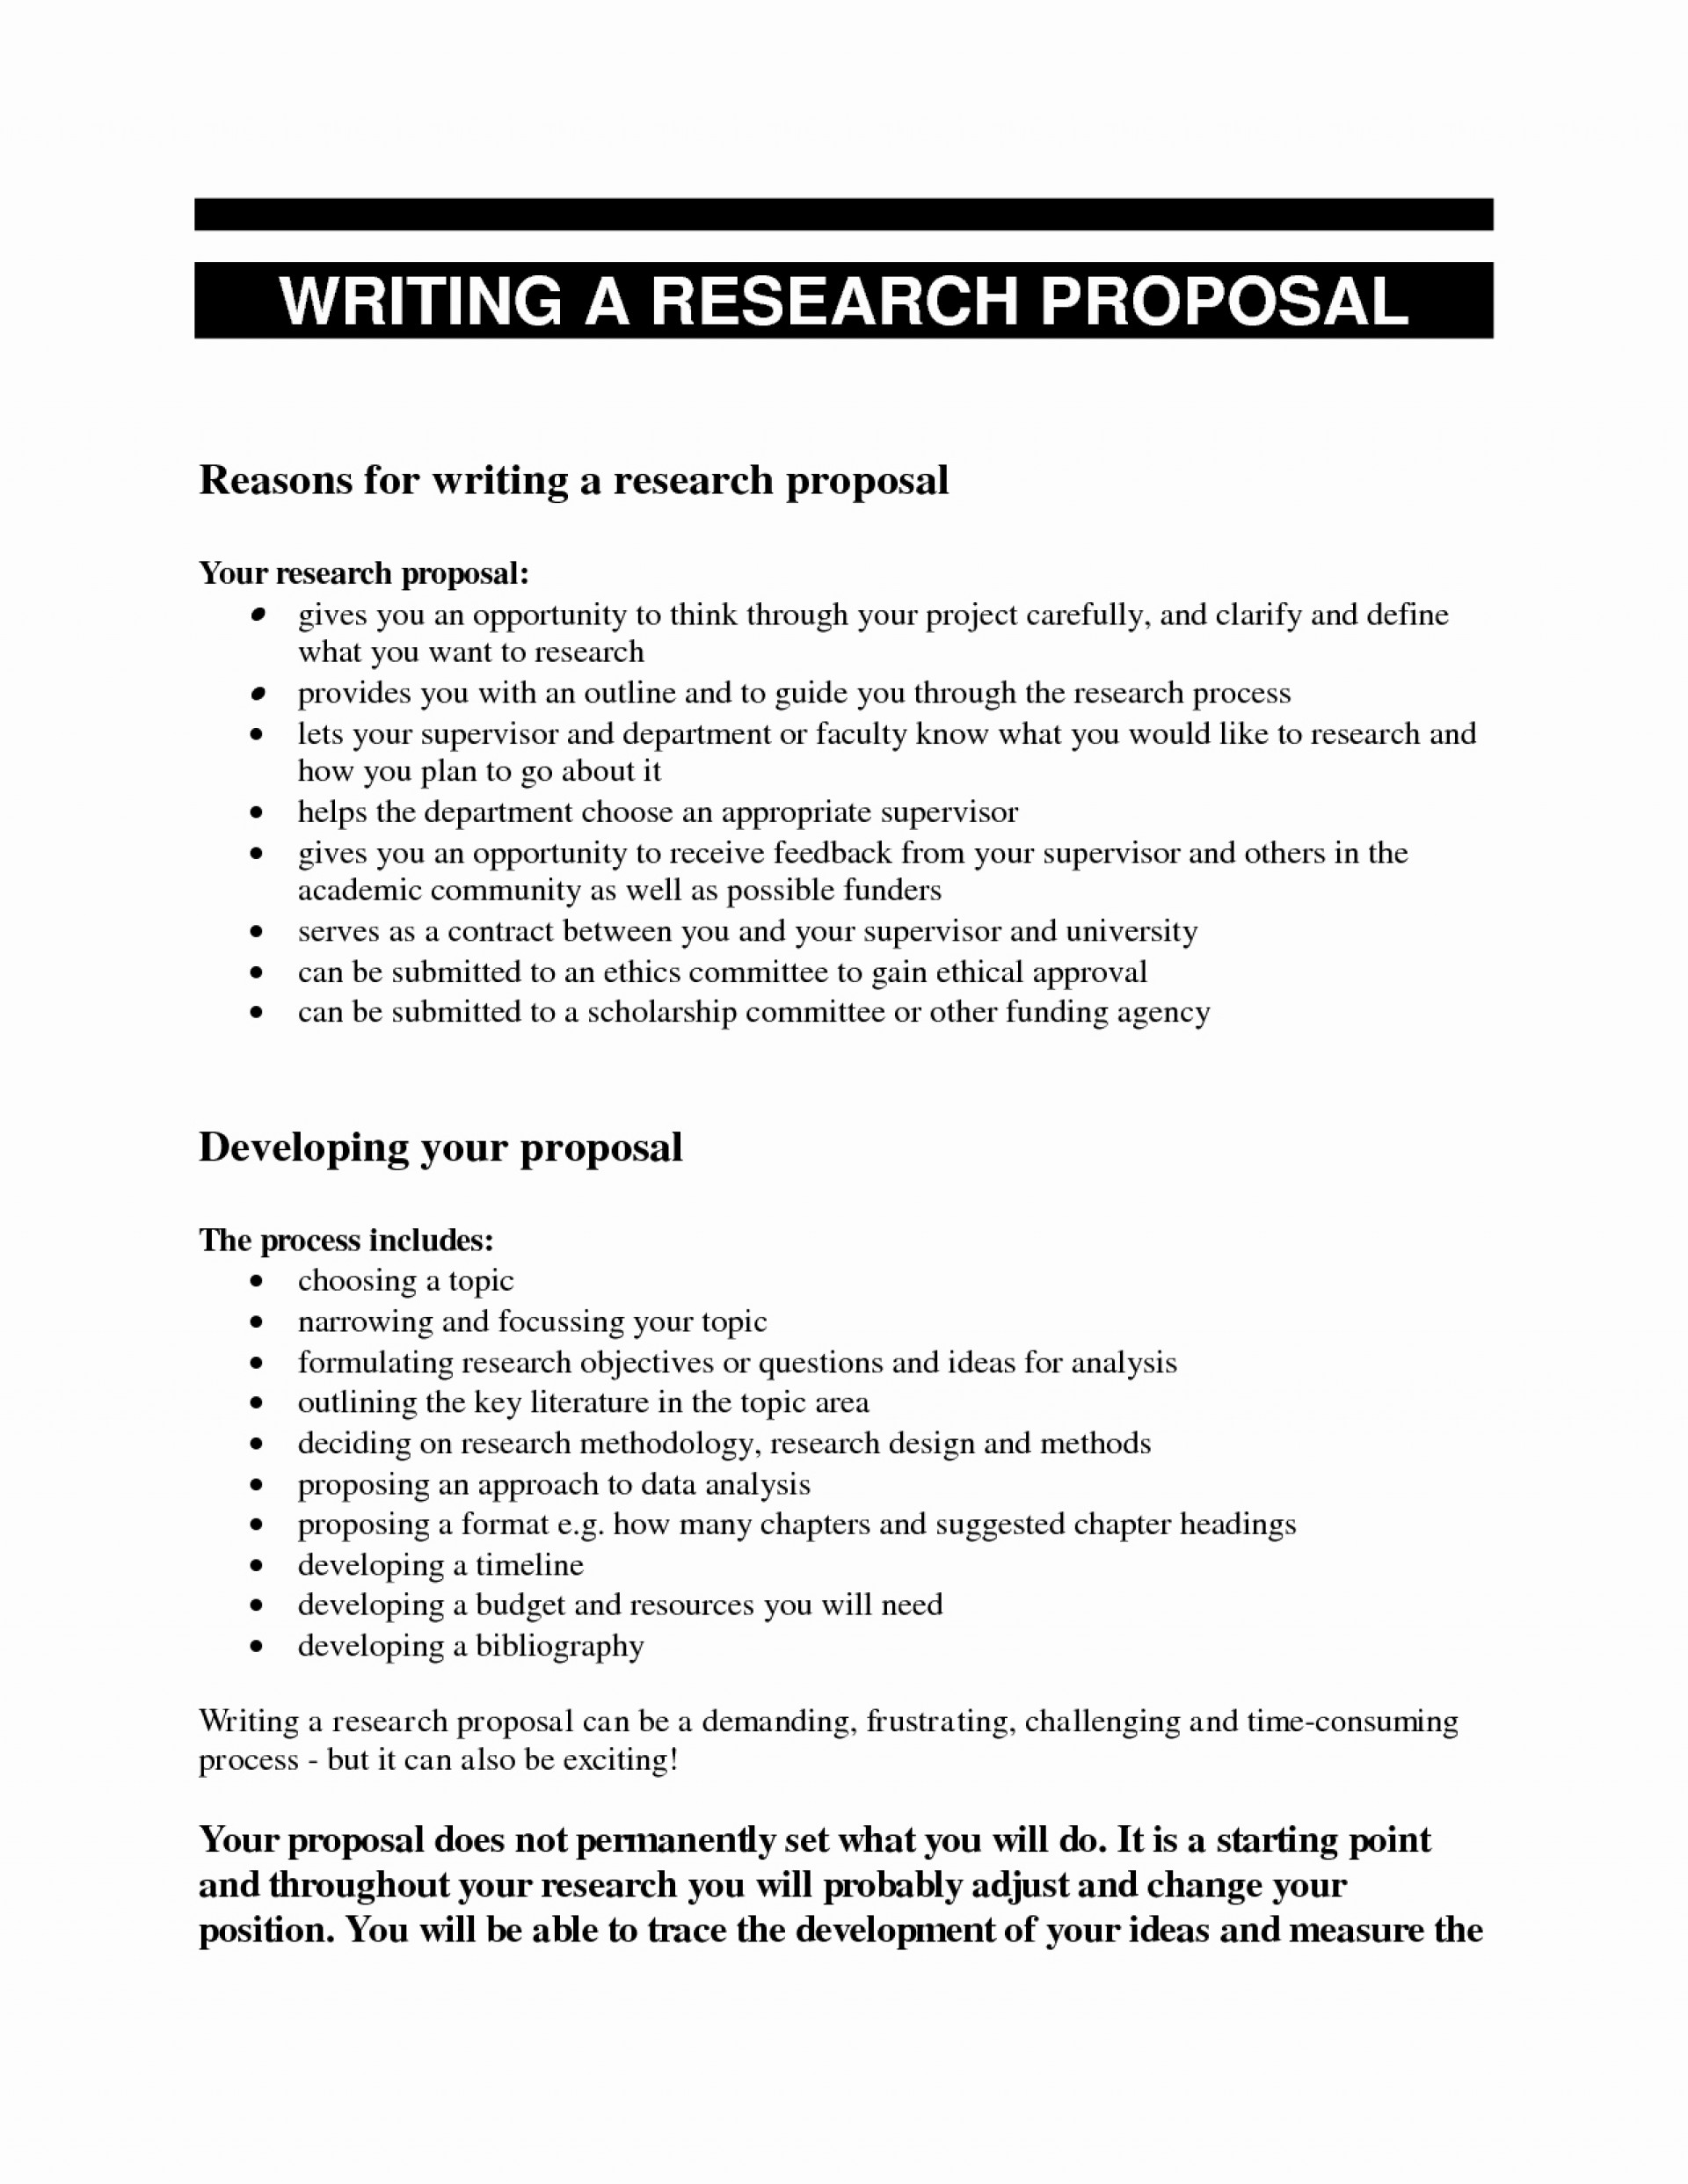 012 Proposal Research Topic Ideas Paper Sociology Topics Beautiful Propose Solution Essay Astounding Nursing Psychology 1920